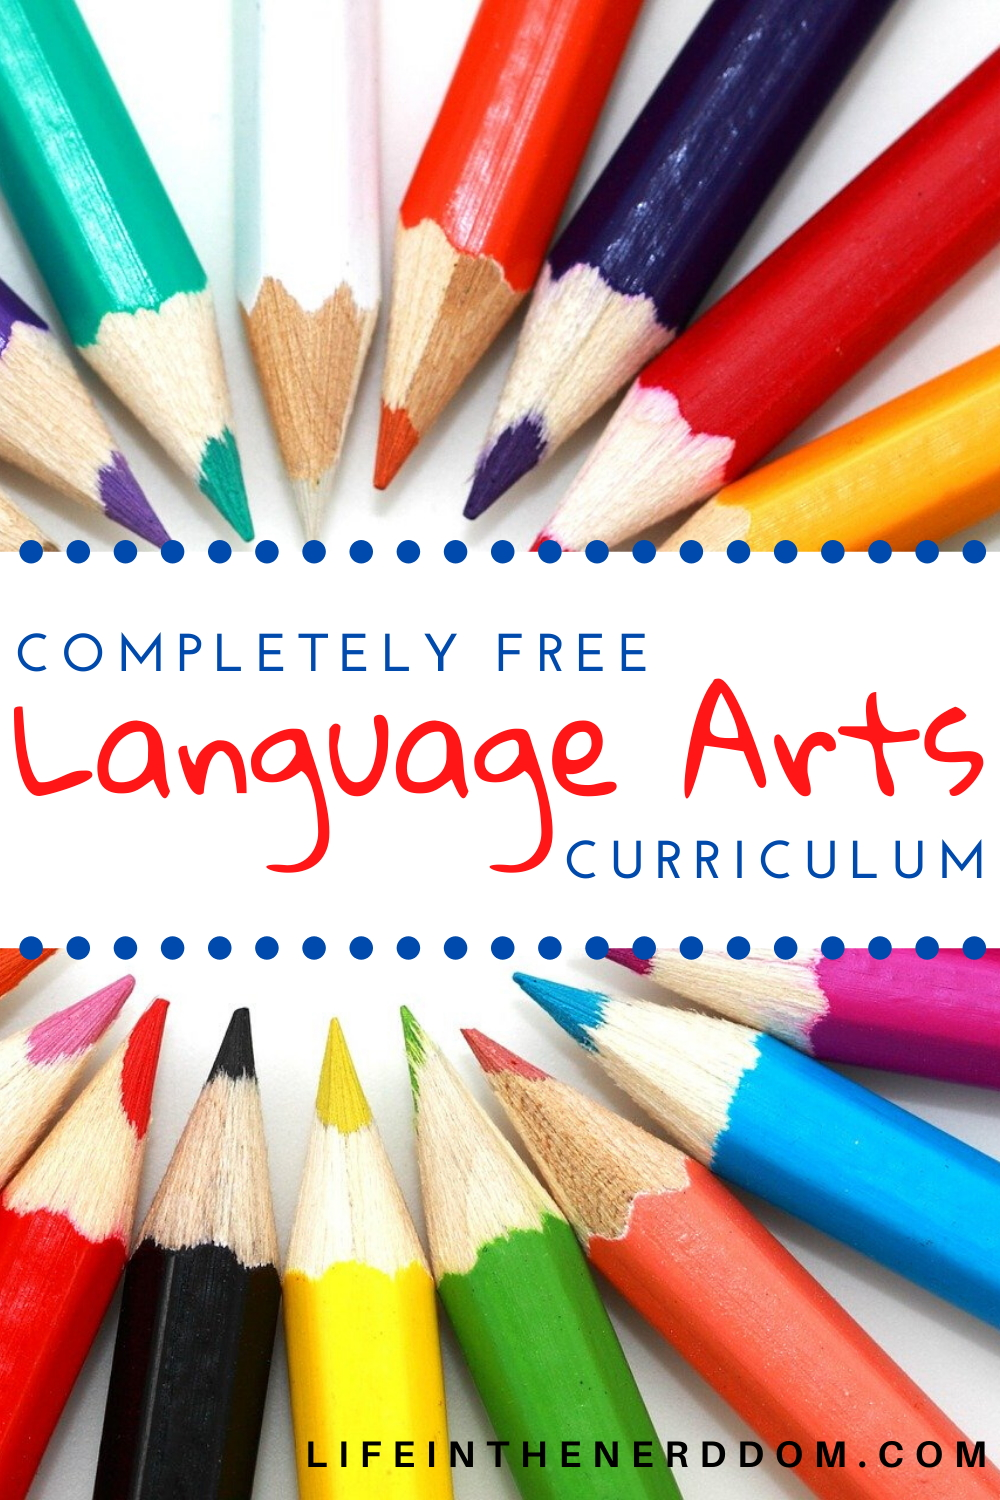 Free Language Arts Curriculum at LifeInTheNerddom.com